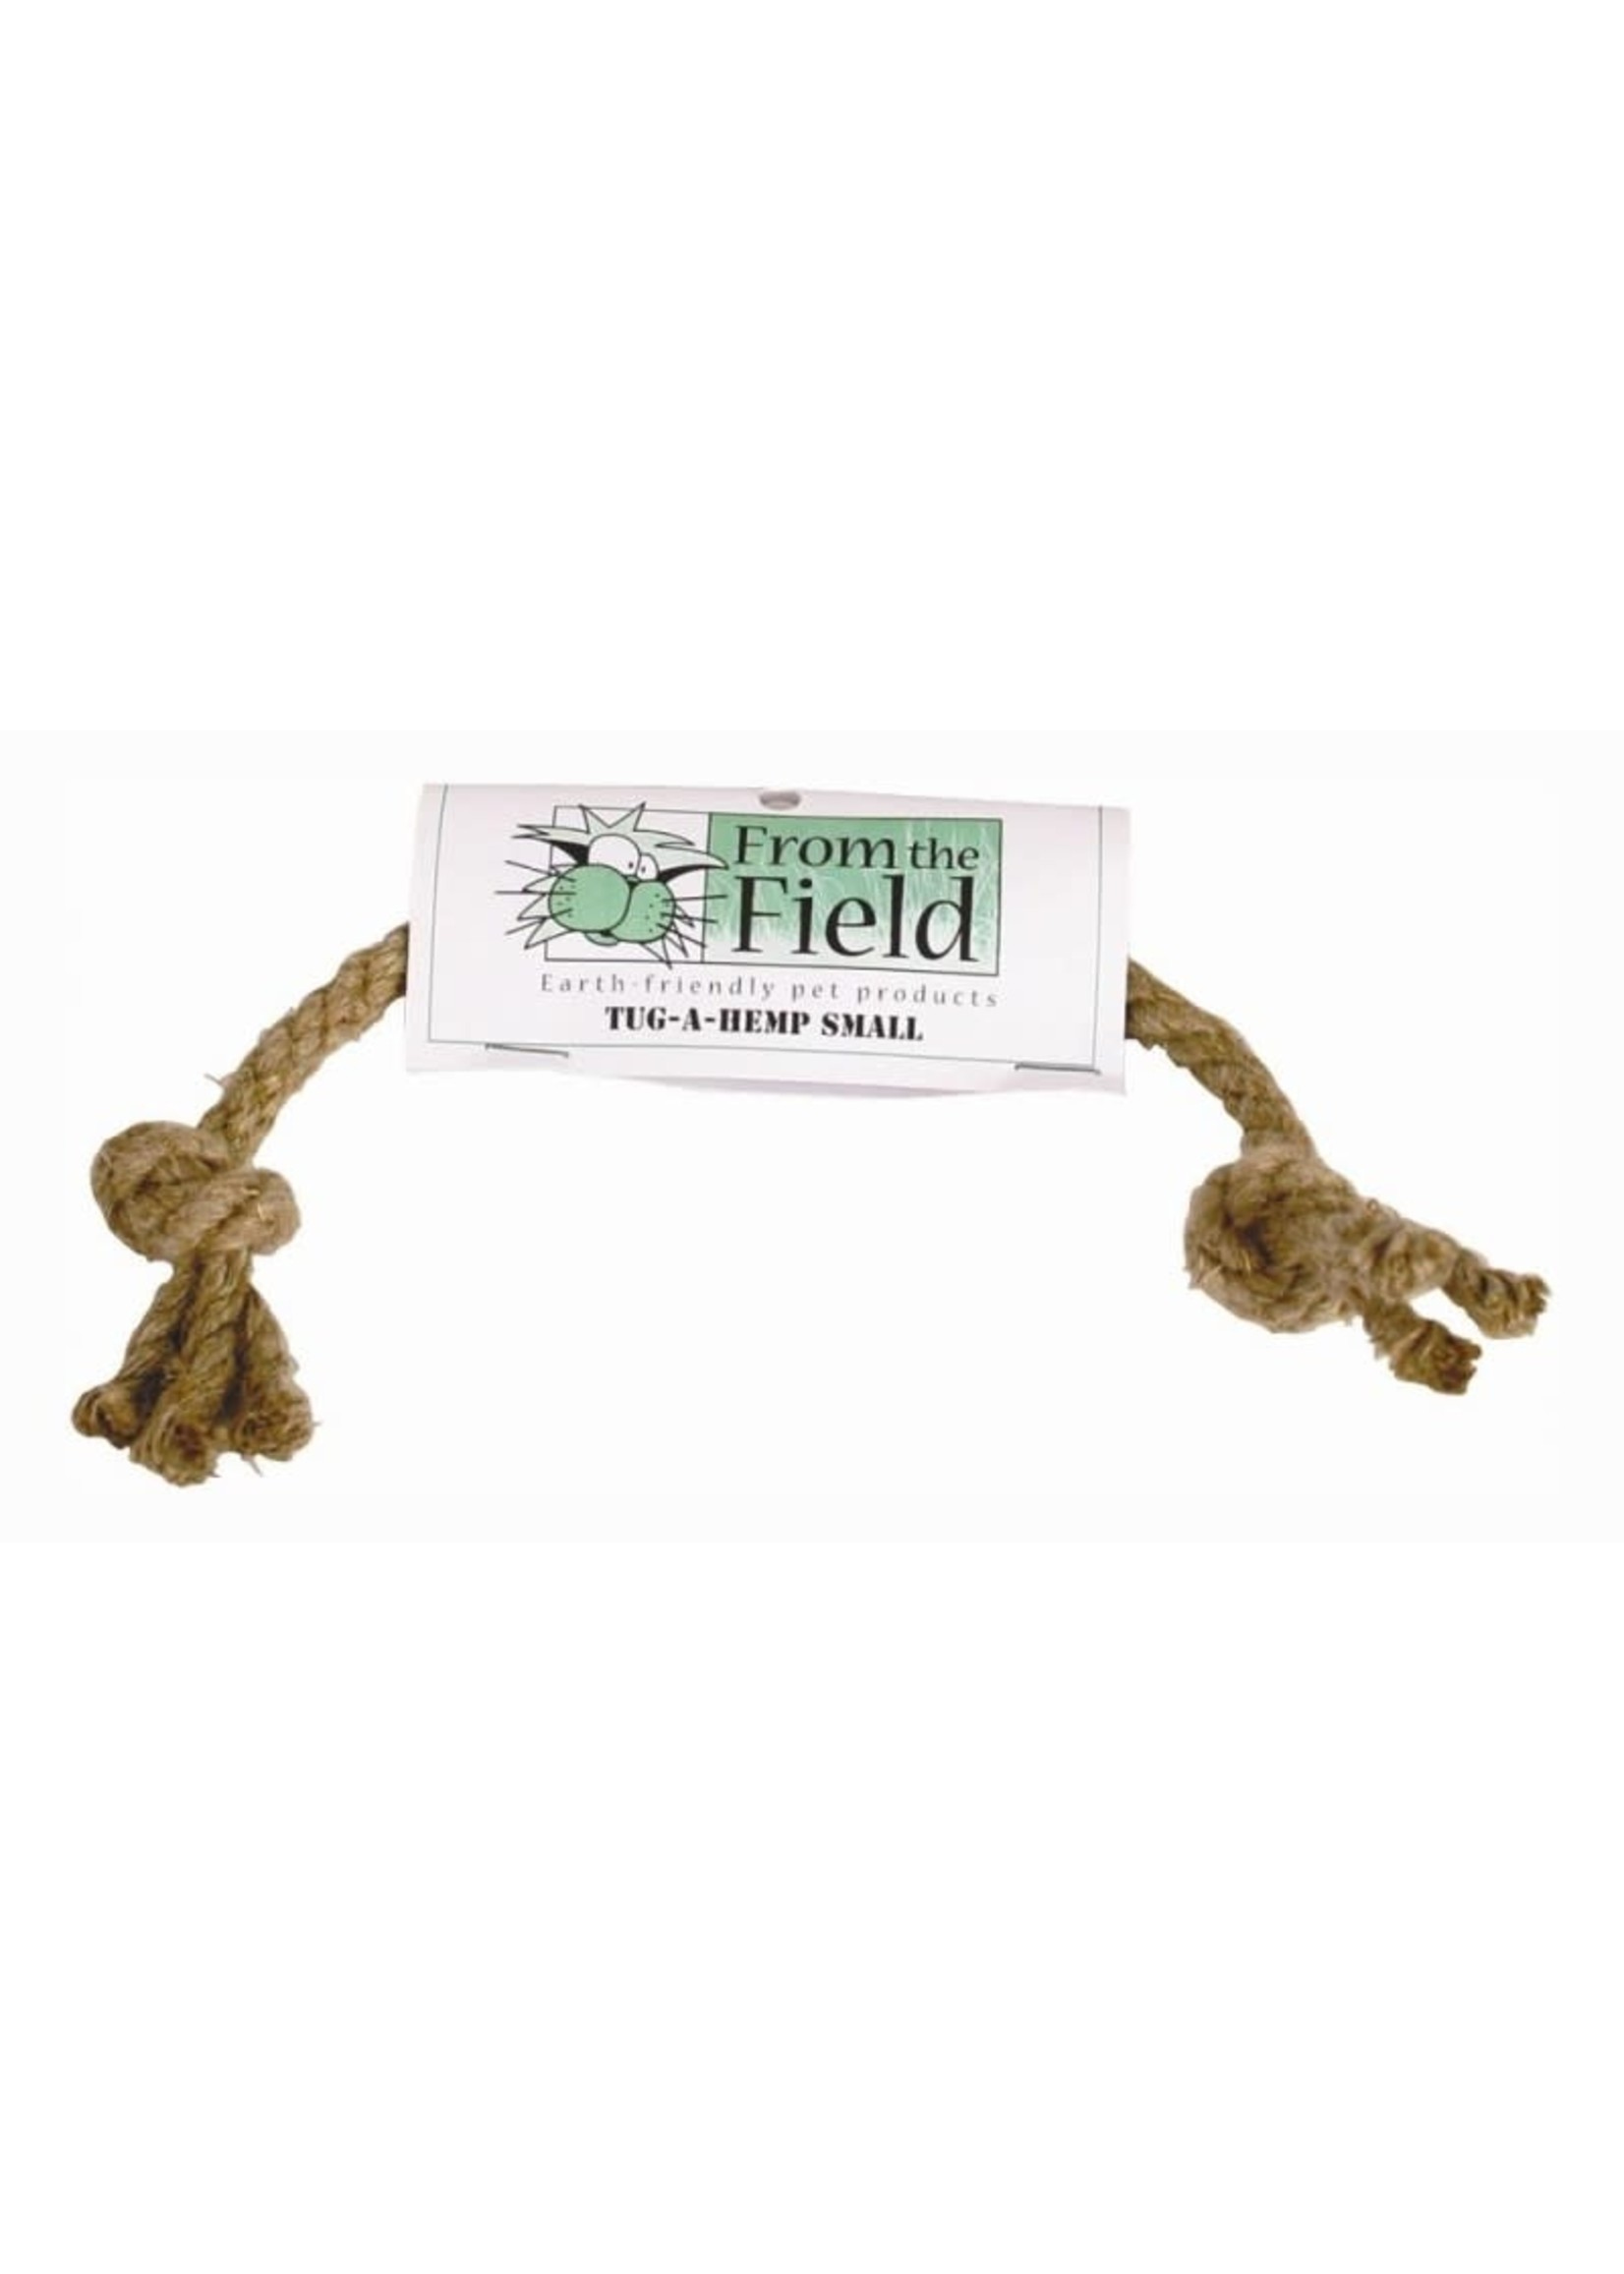 From The Field From the Field Tug-A-Hemp Small